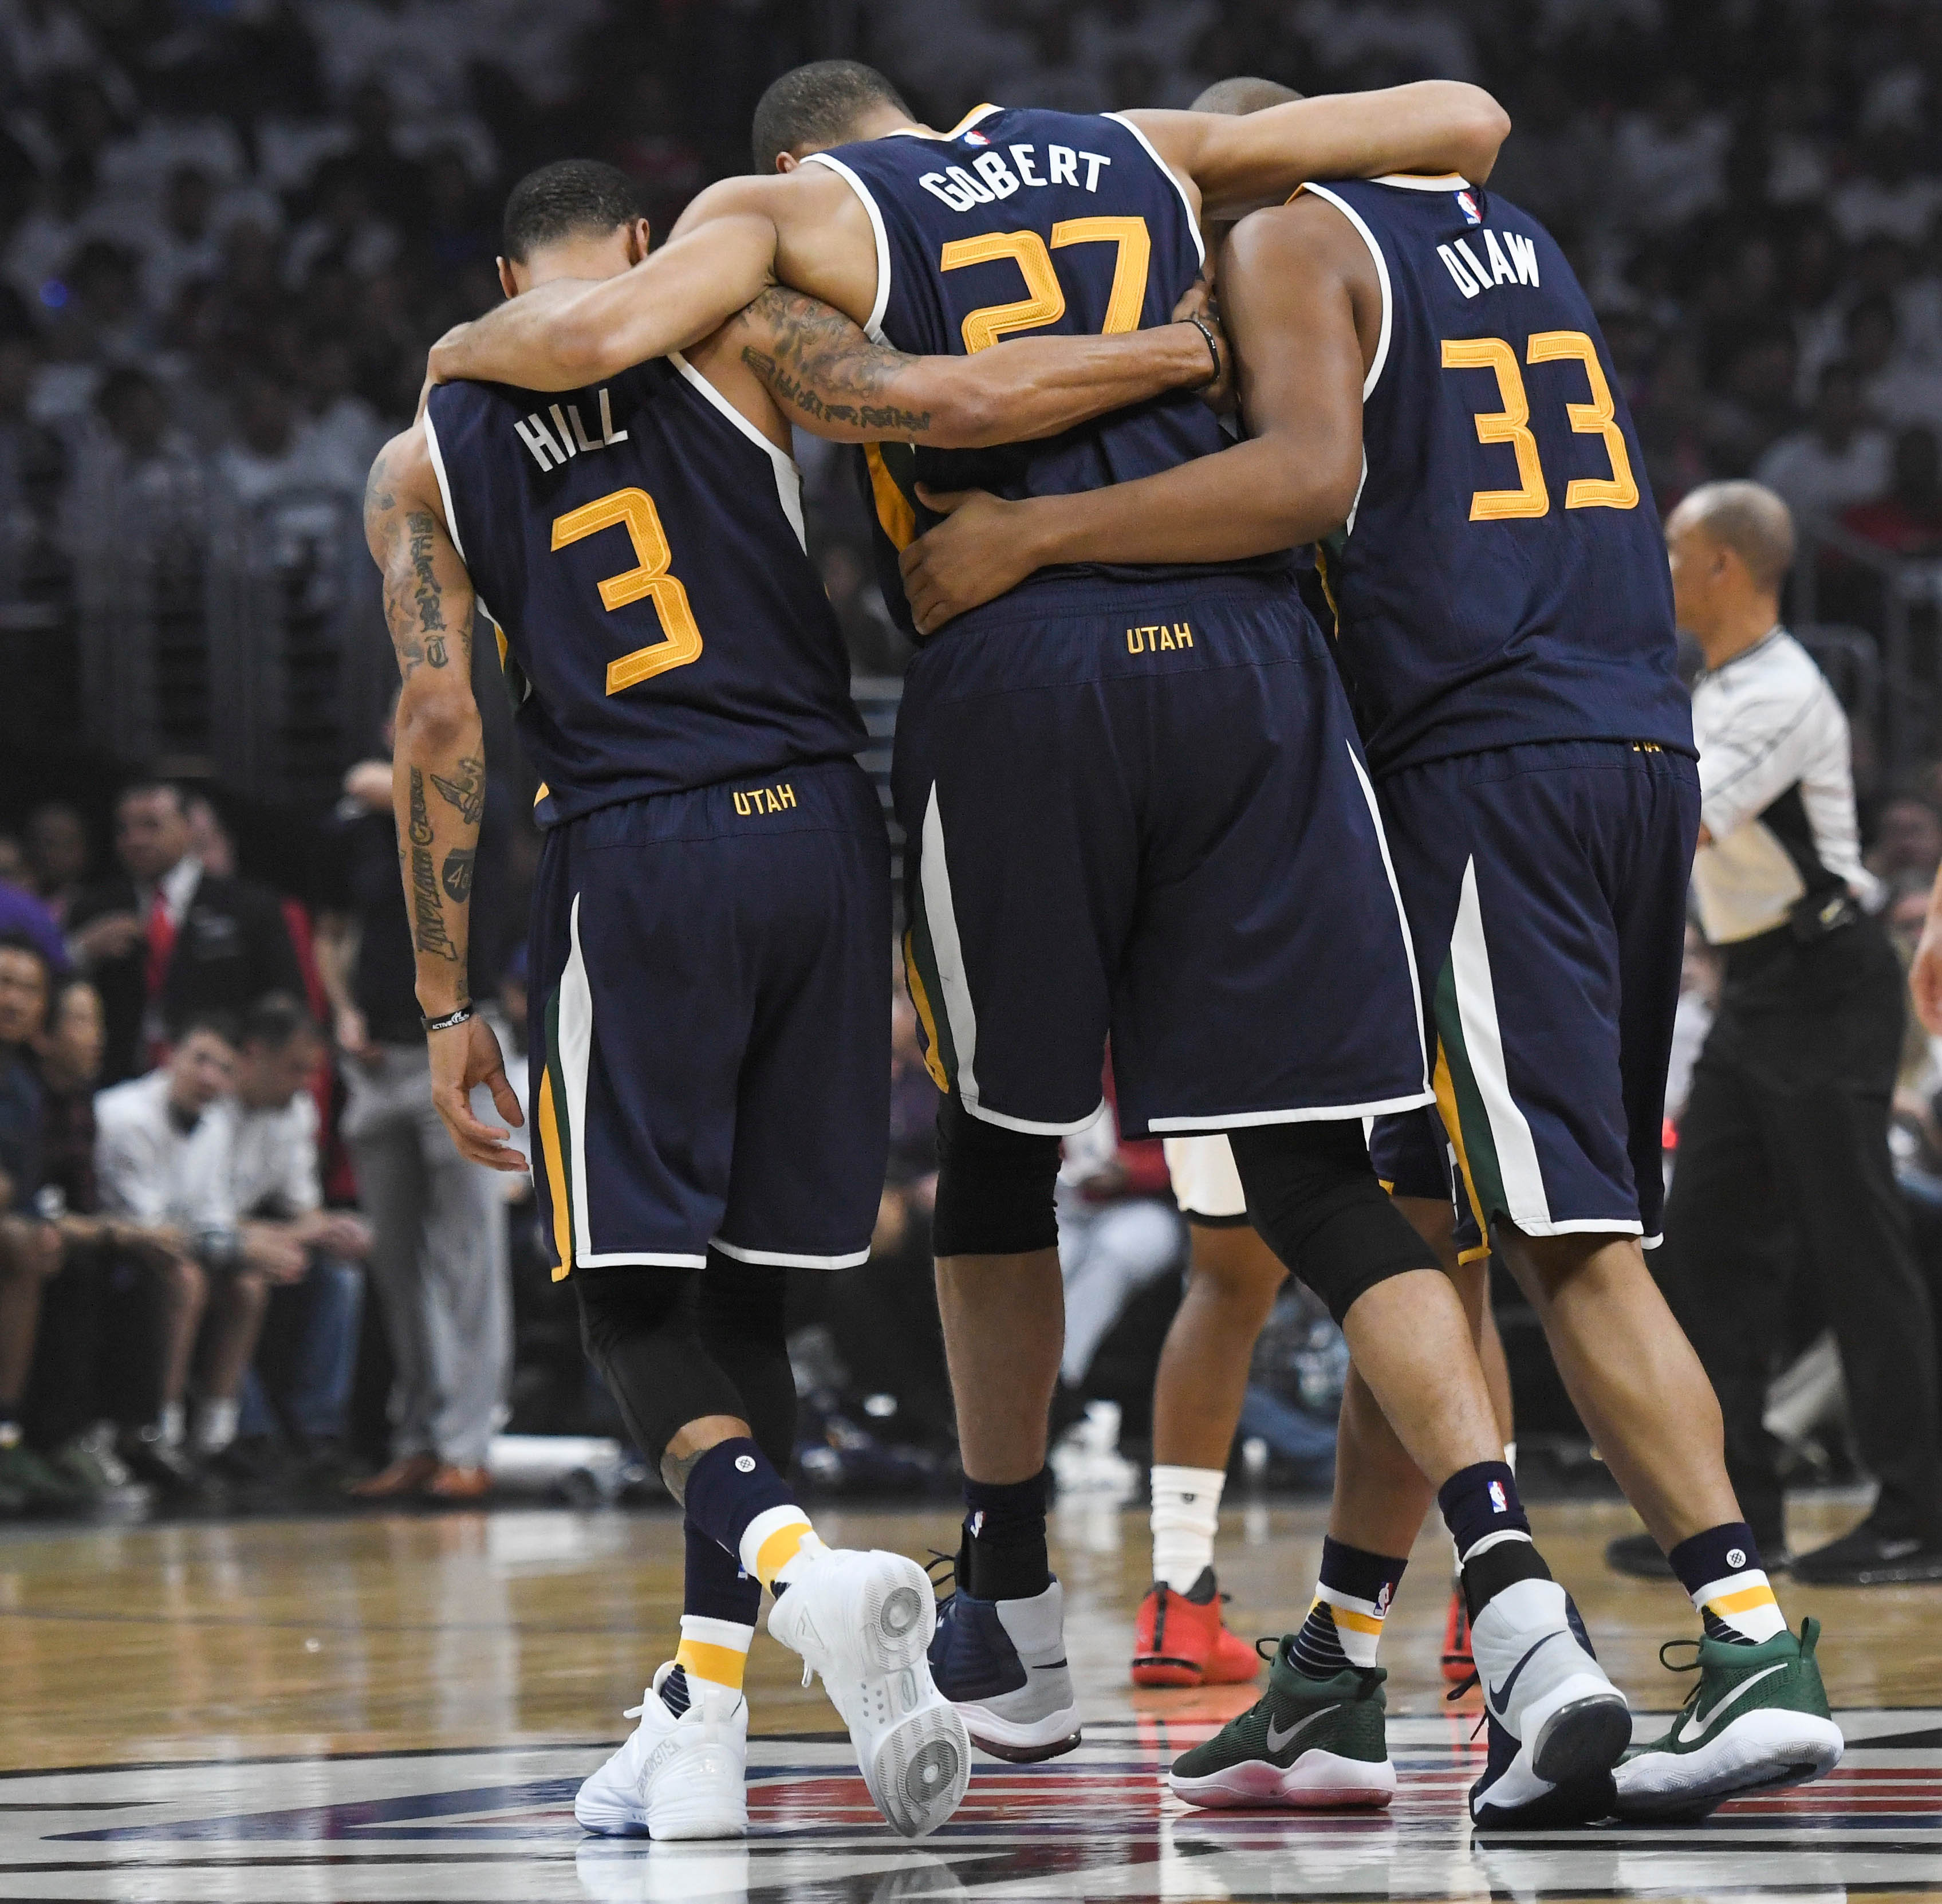 10015344-nba-playoffs-utah-jazz-at-los-angeles-clippers-1